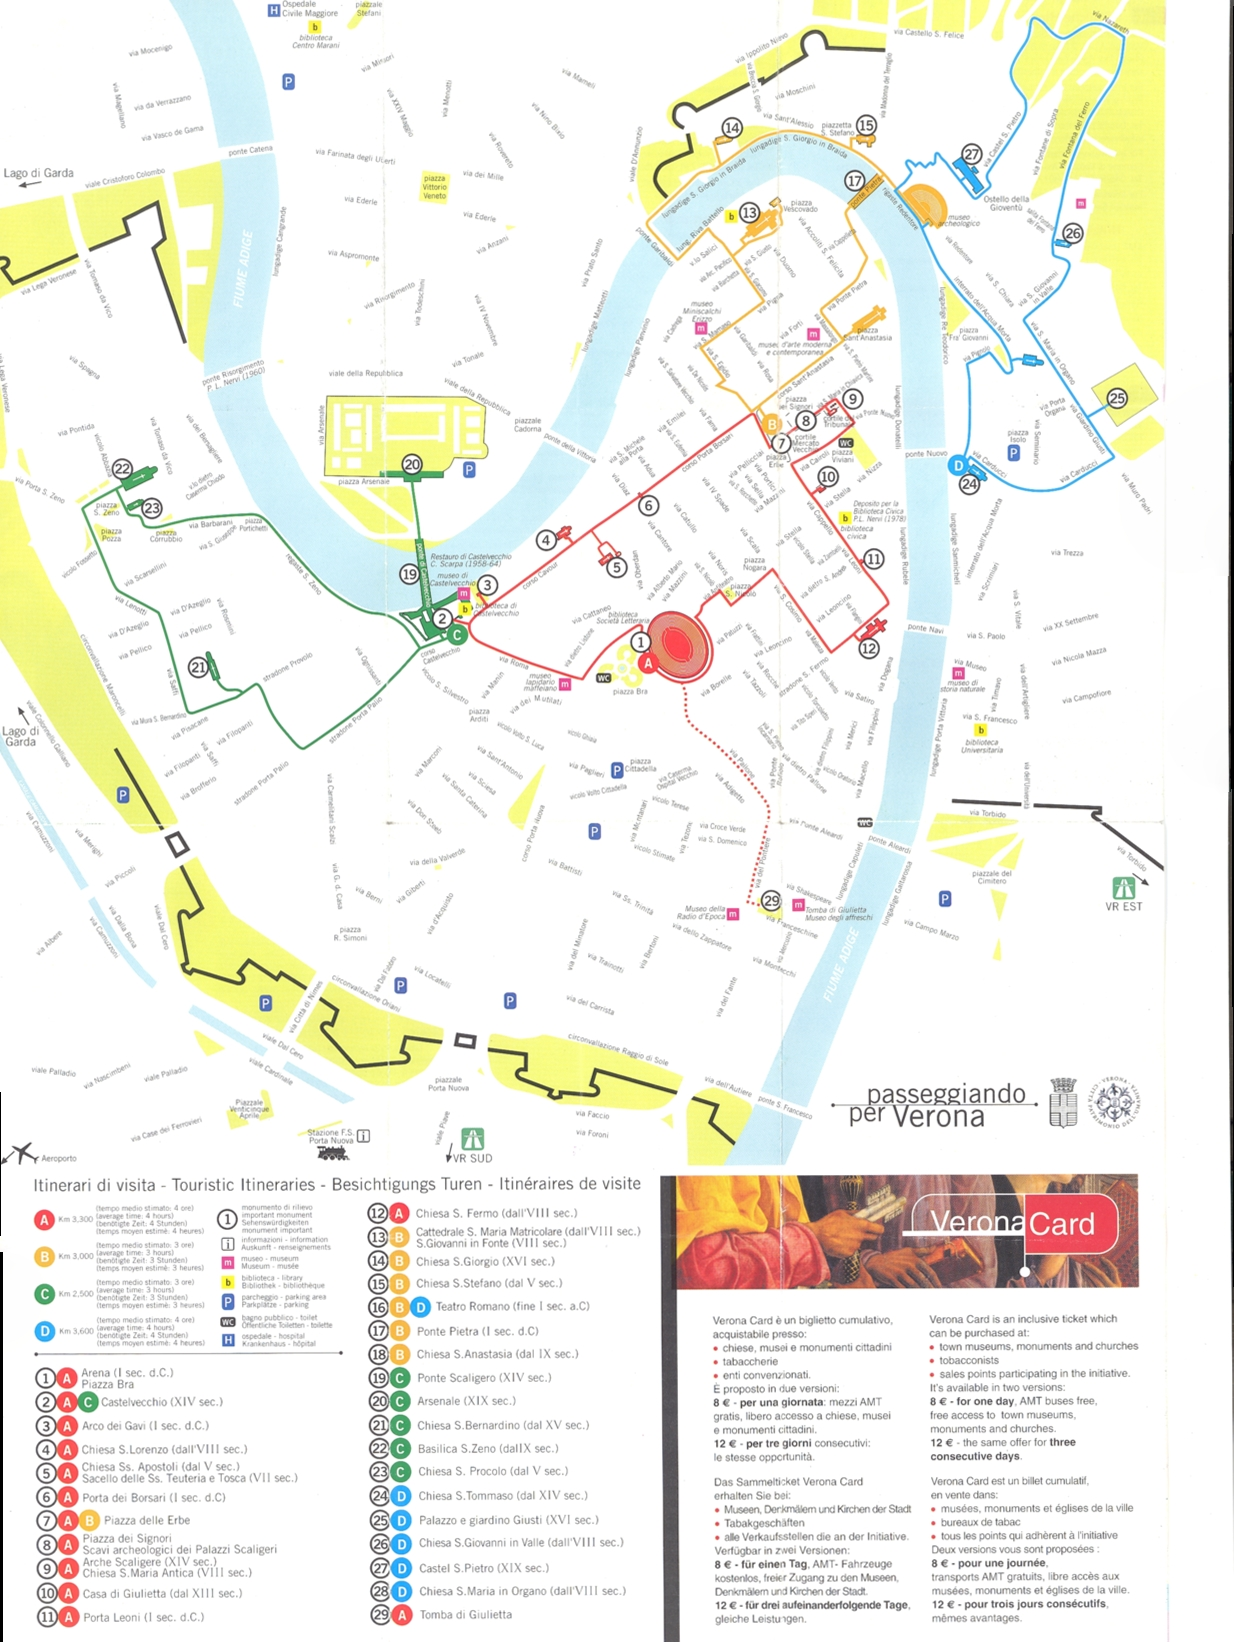 verona tourism map - photo#25